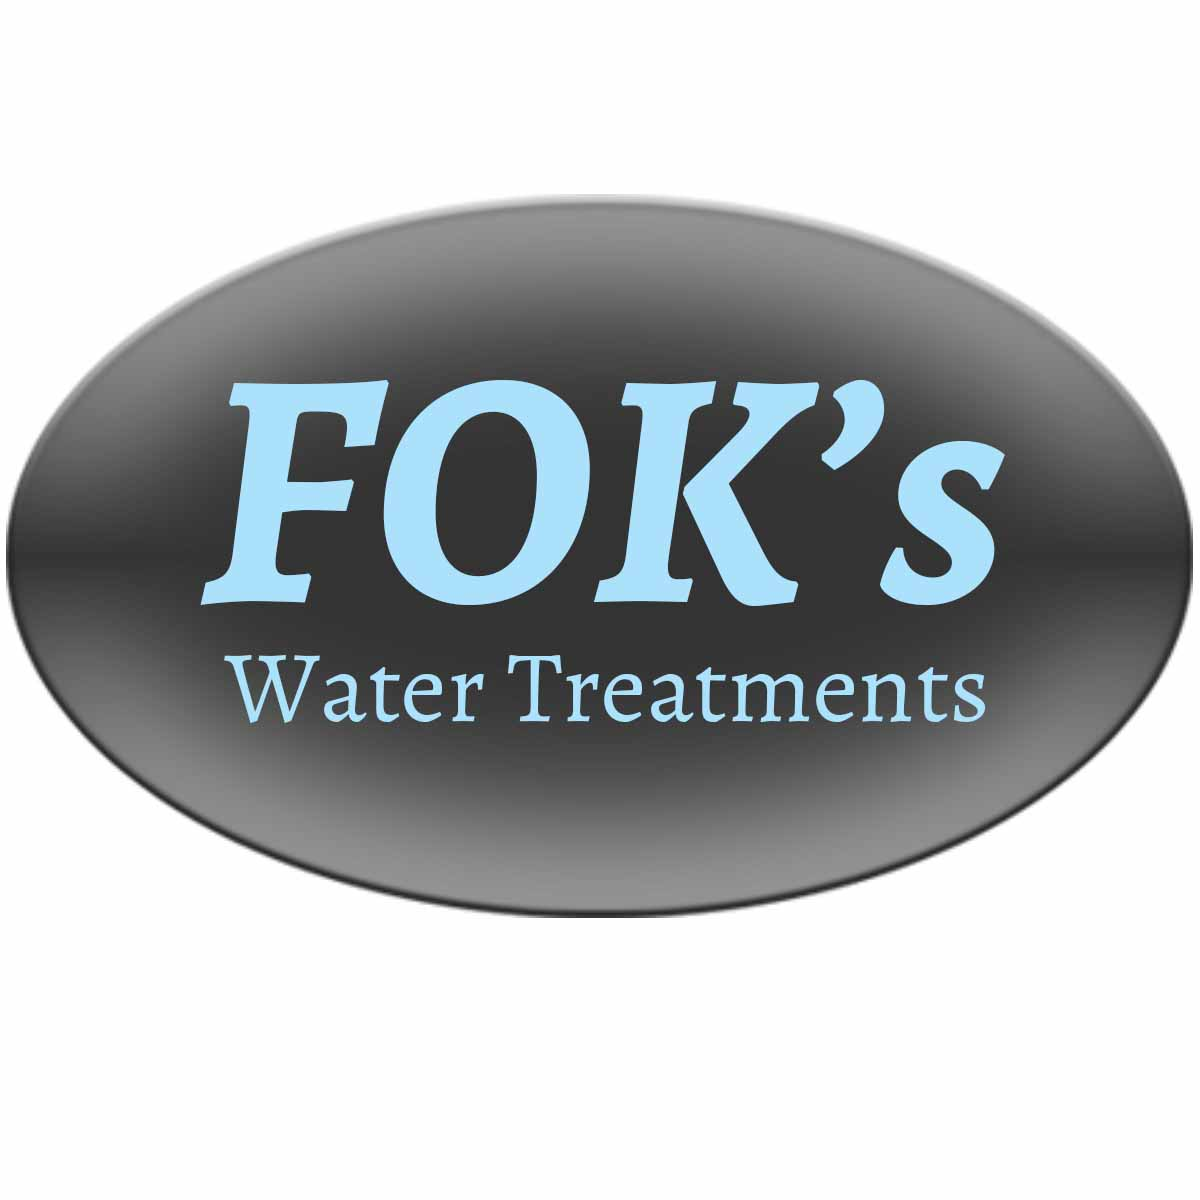 FOK's Water